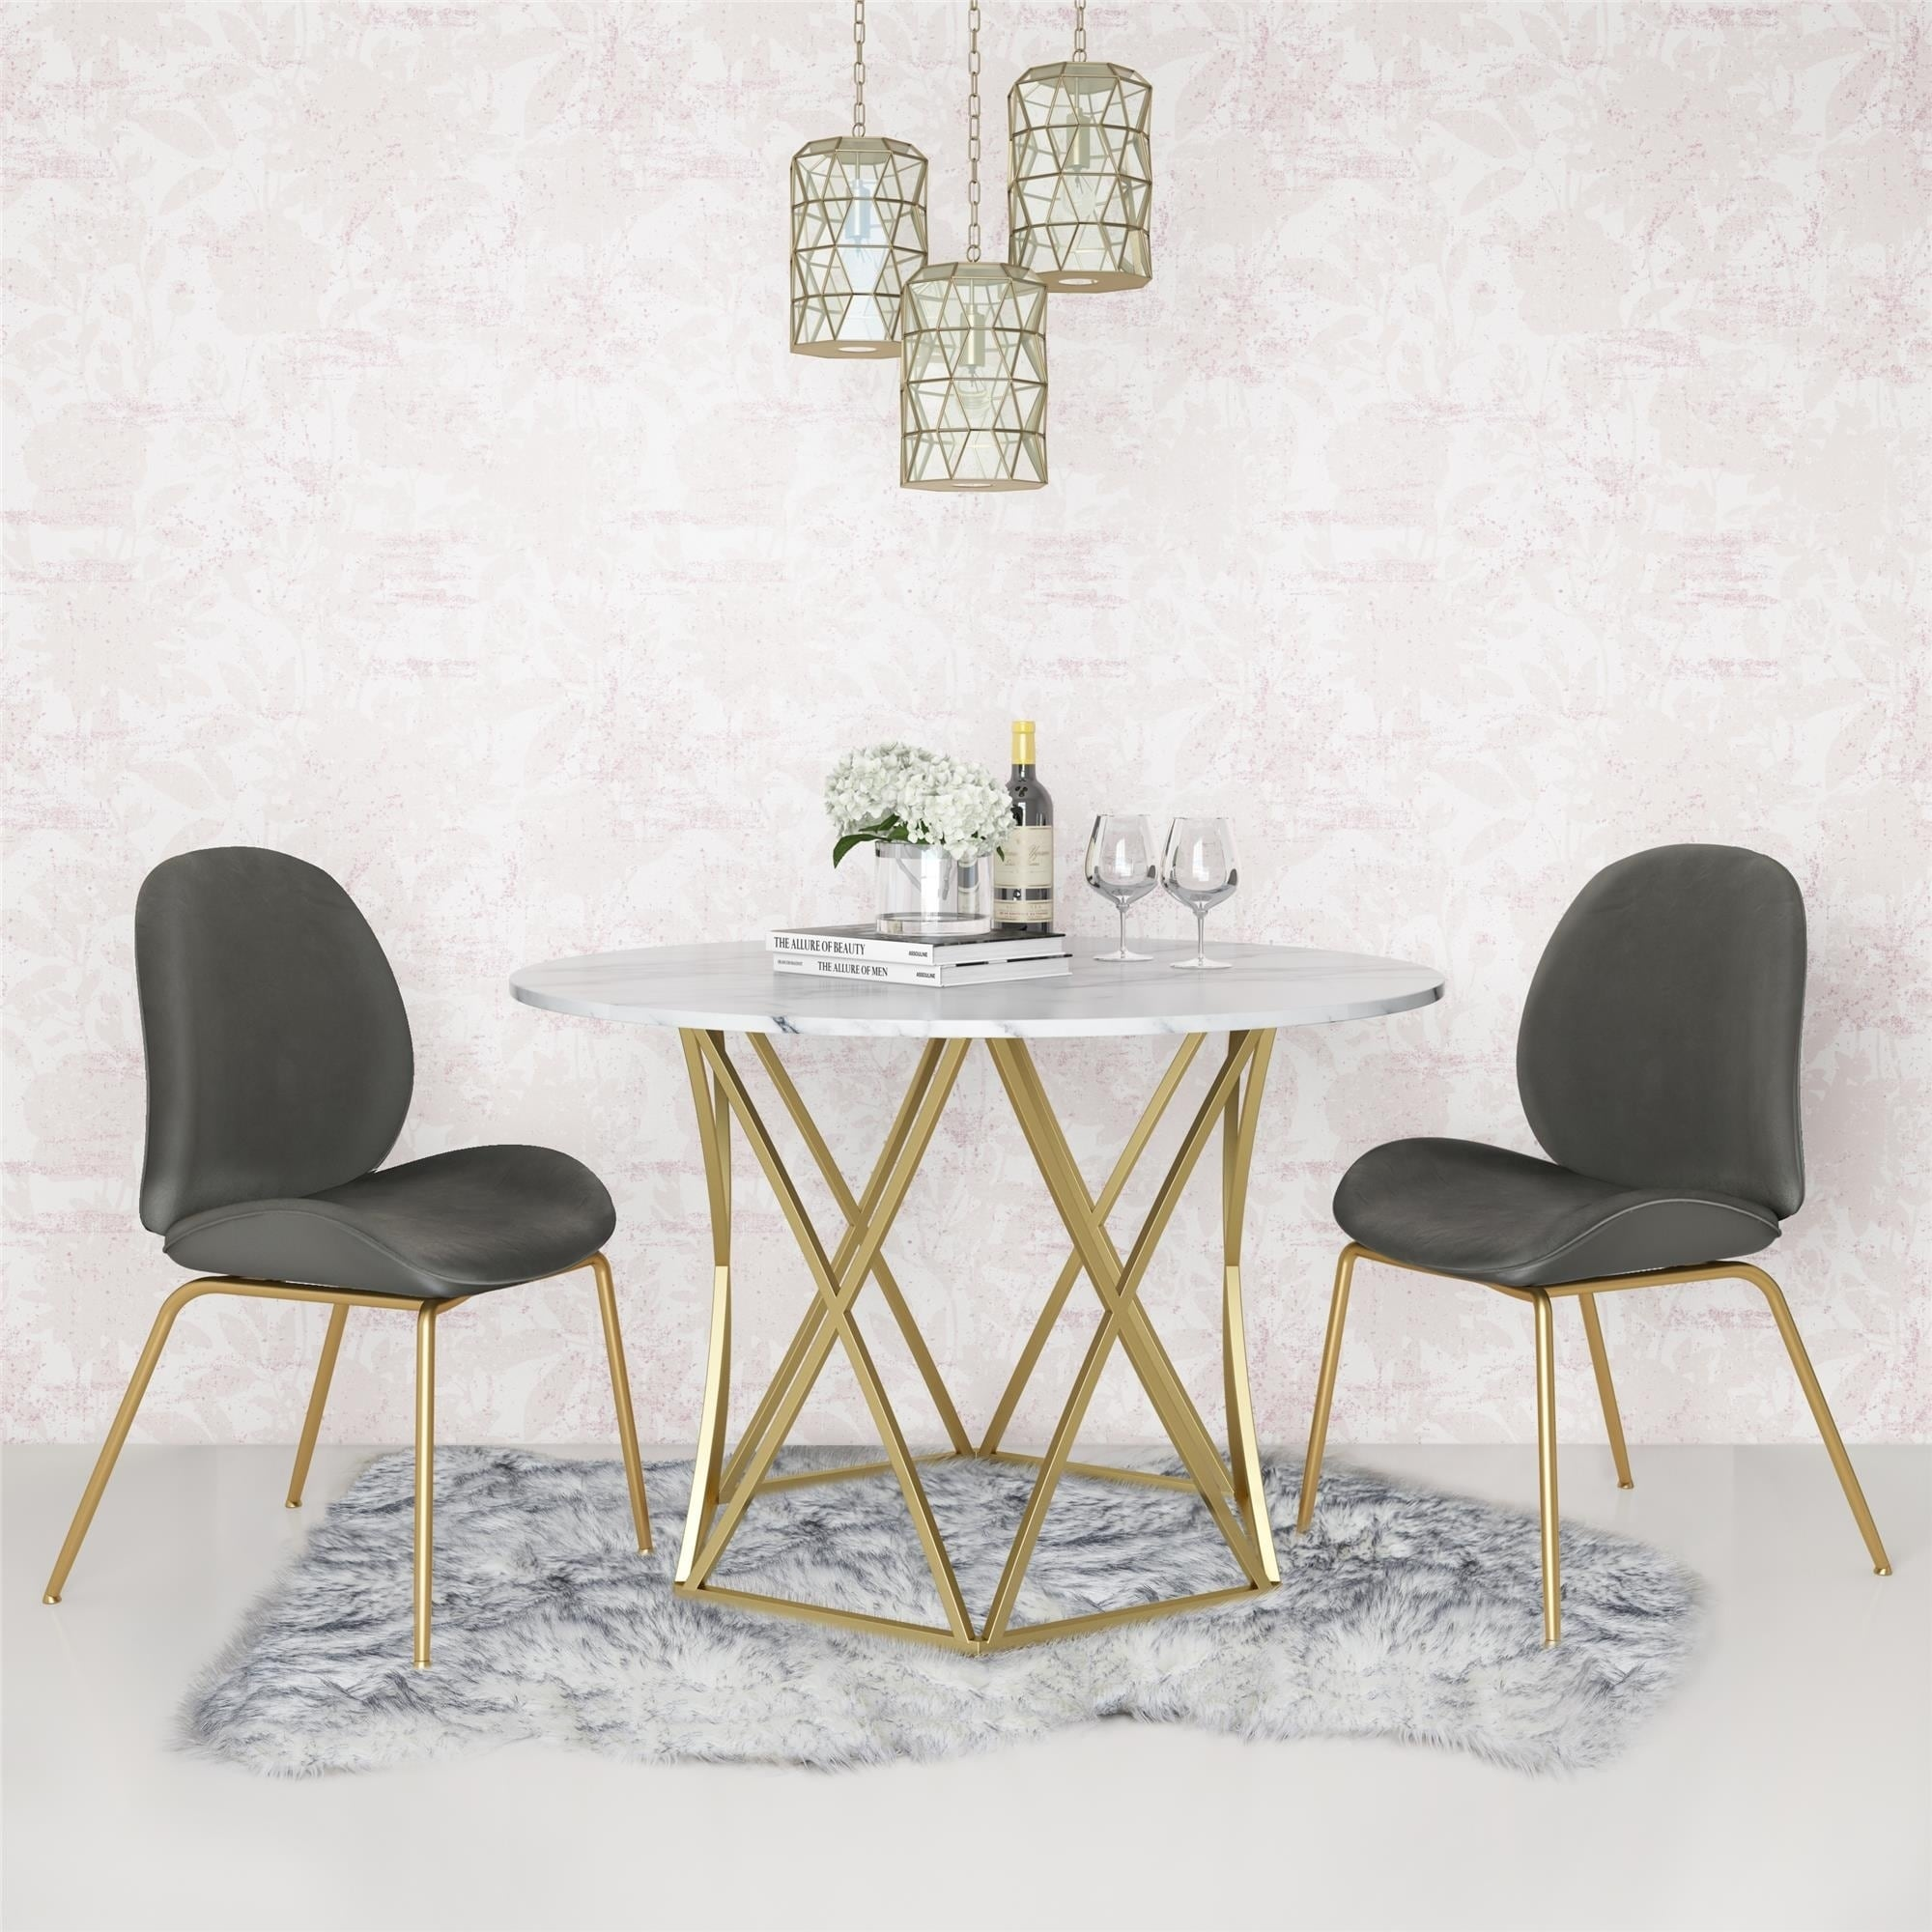 Cosmoliving By Cosmopolitan Elle Round Dining Table Overstock 27279705